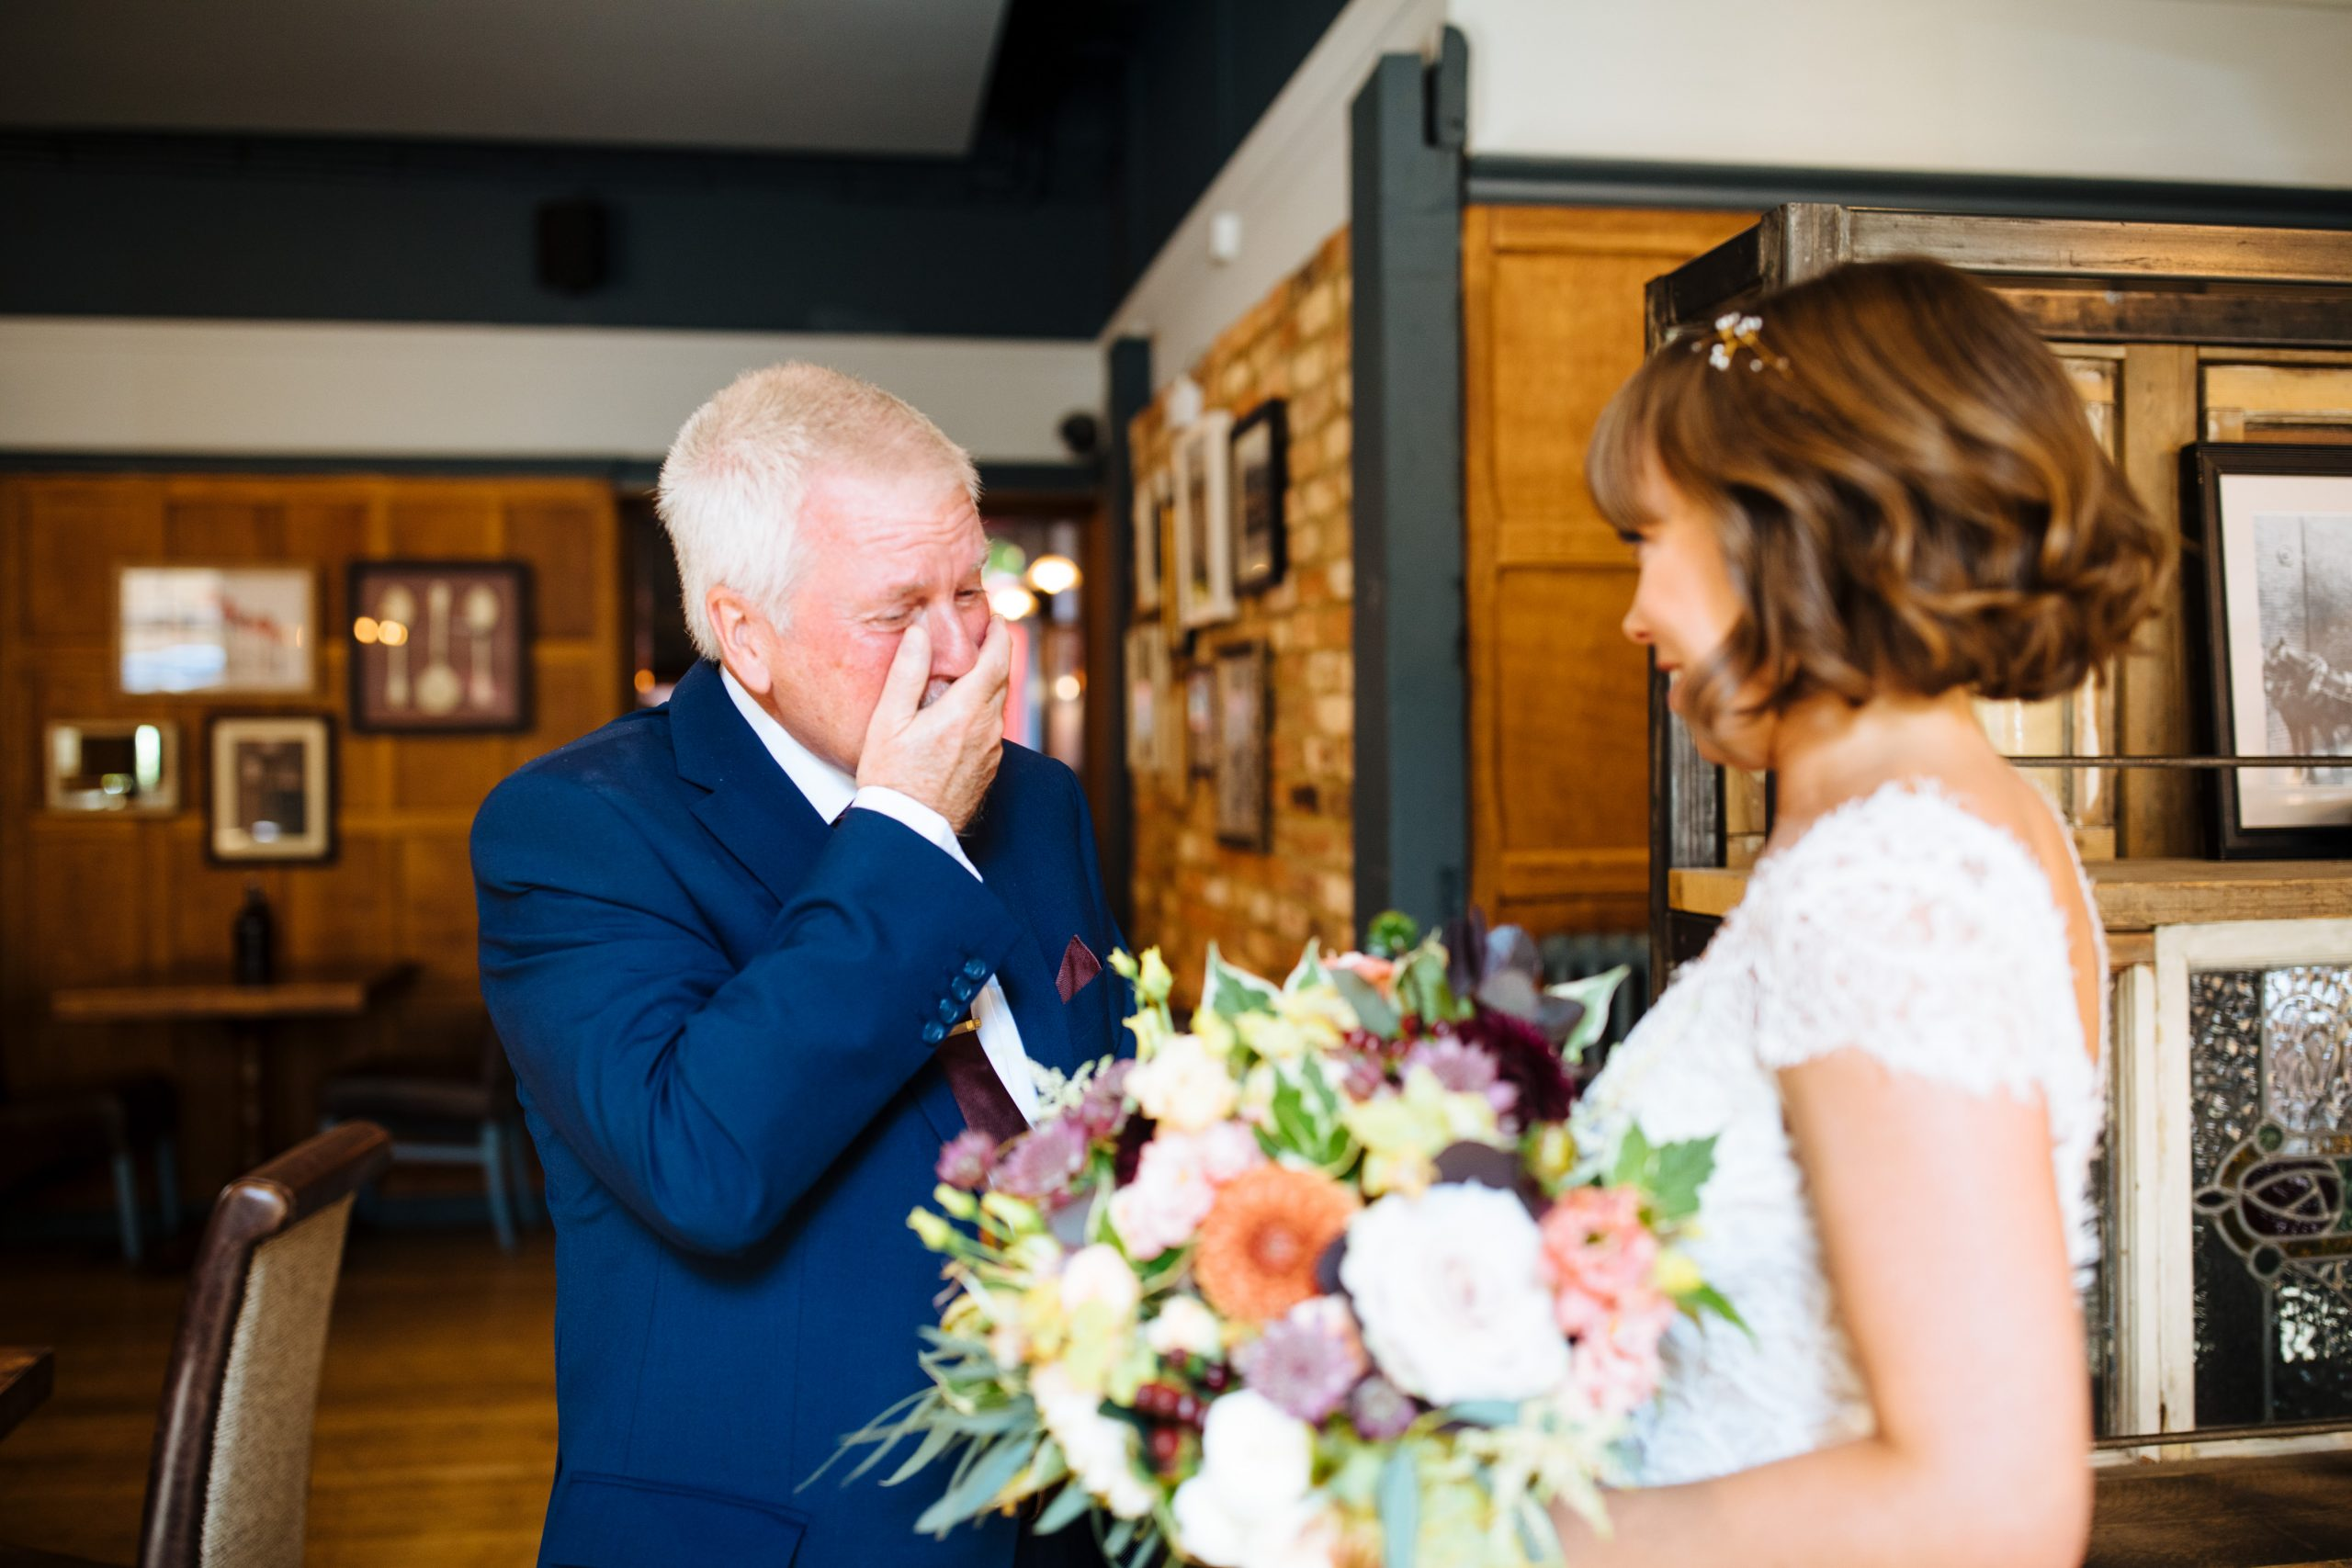 dads tearful reaction to seeing bride in the dress